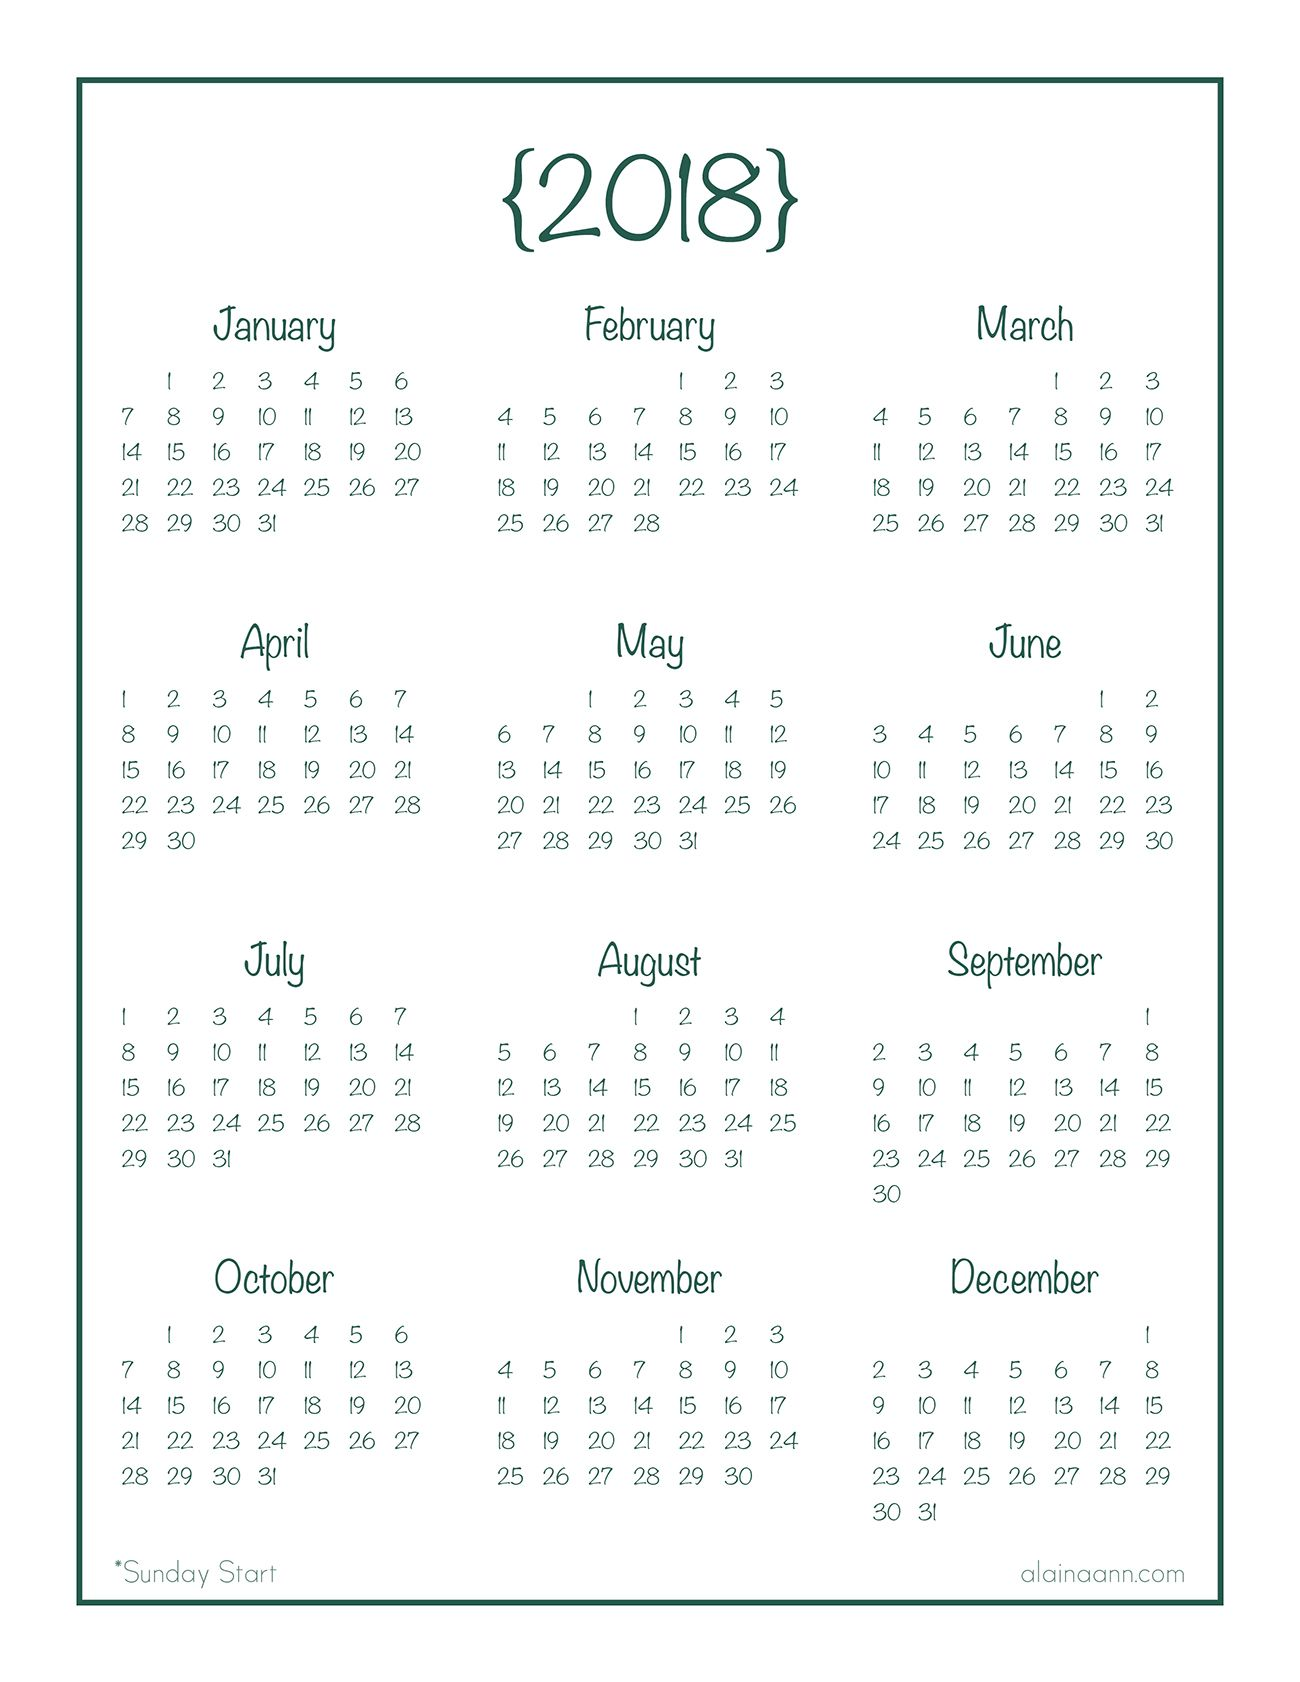 2018 year at a glance calendar free printable